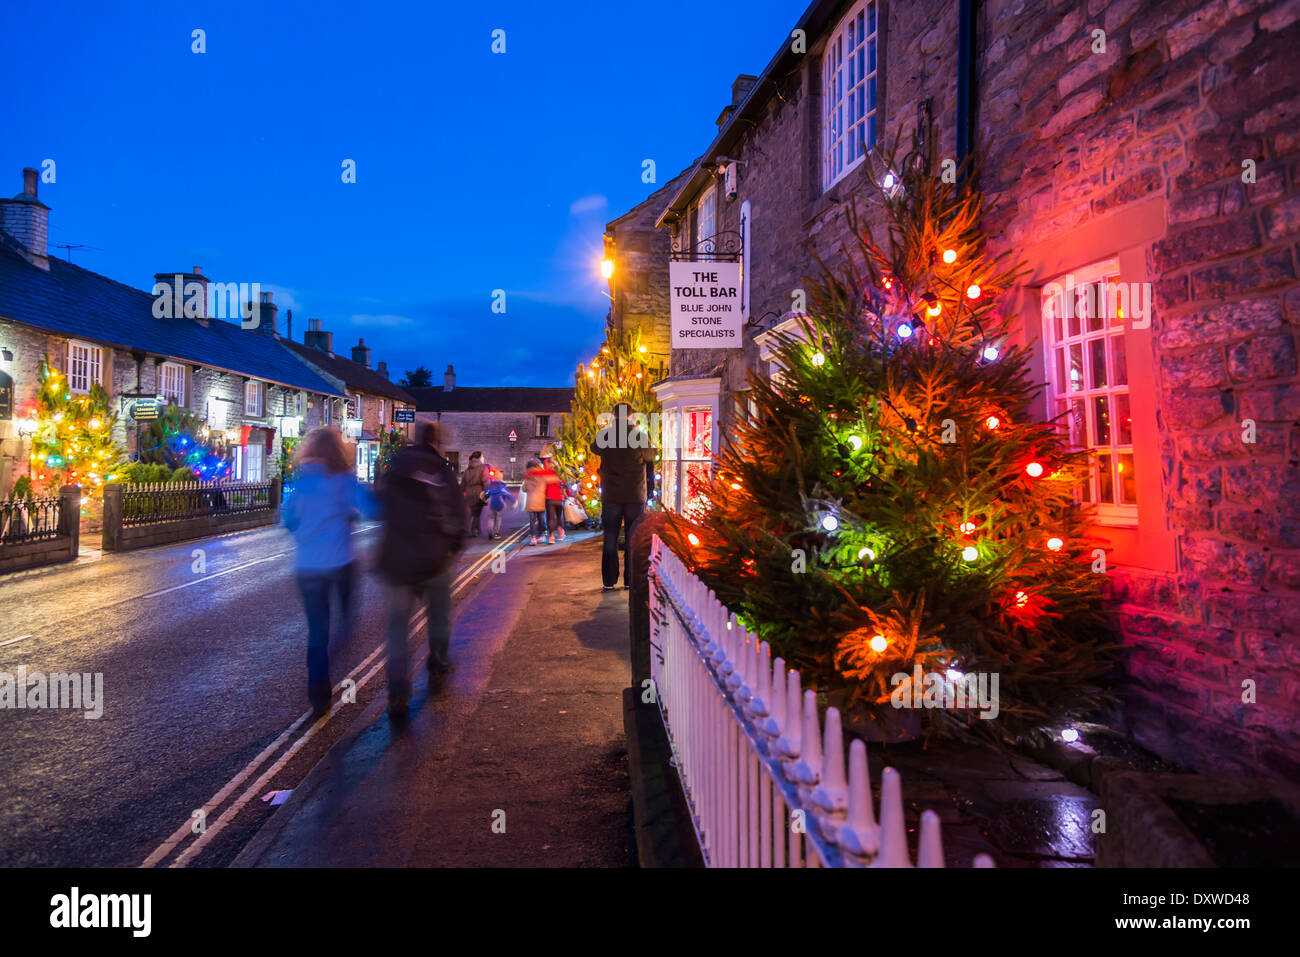 Christmas lights and trees illuminate the streets of Castleton in the Peak District Derbyshire - Stock Image